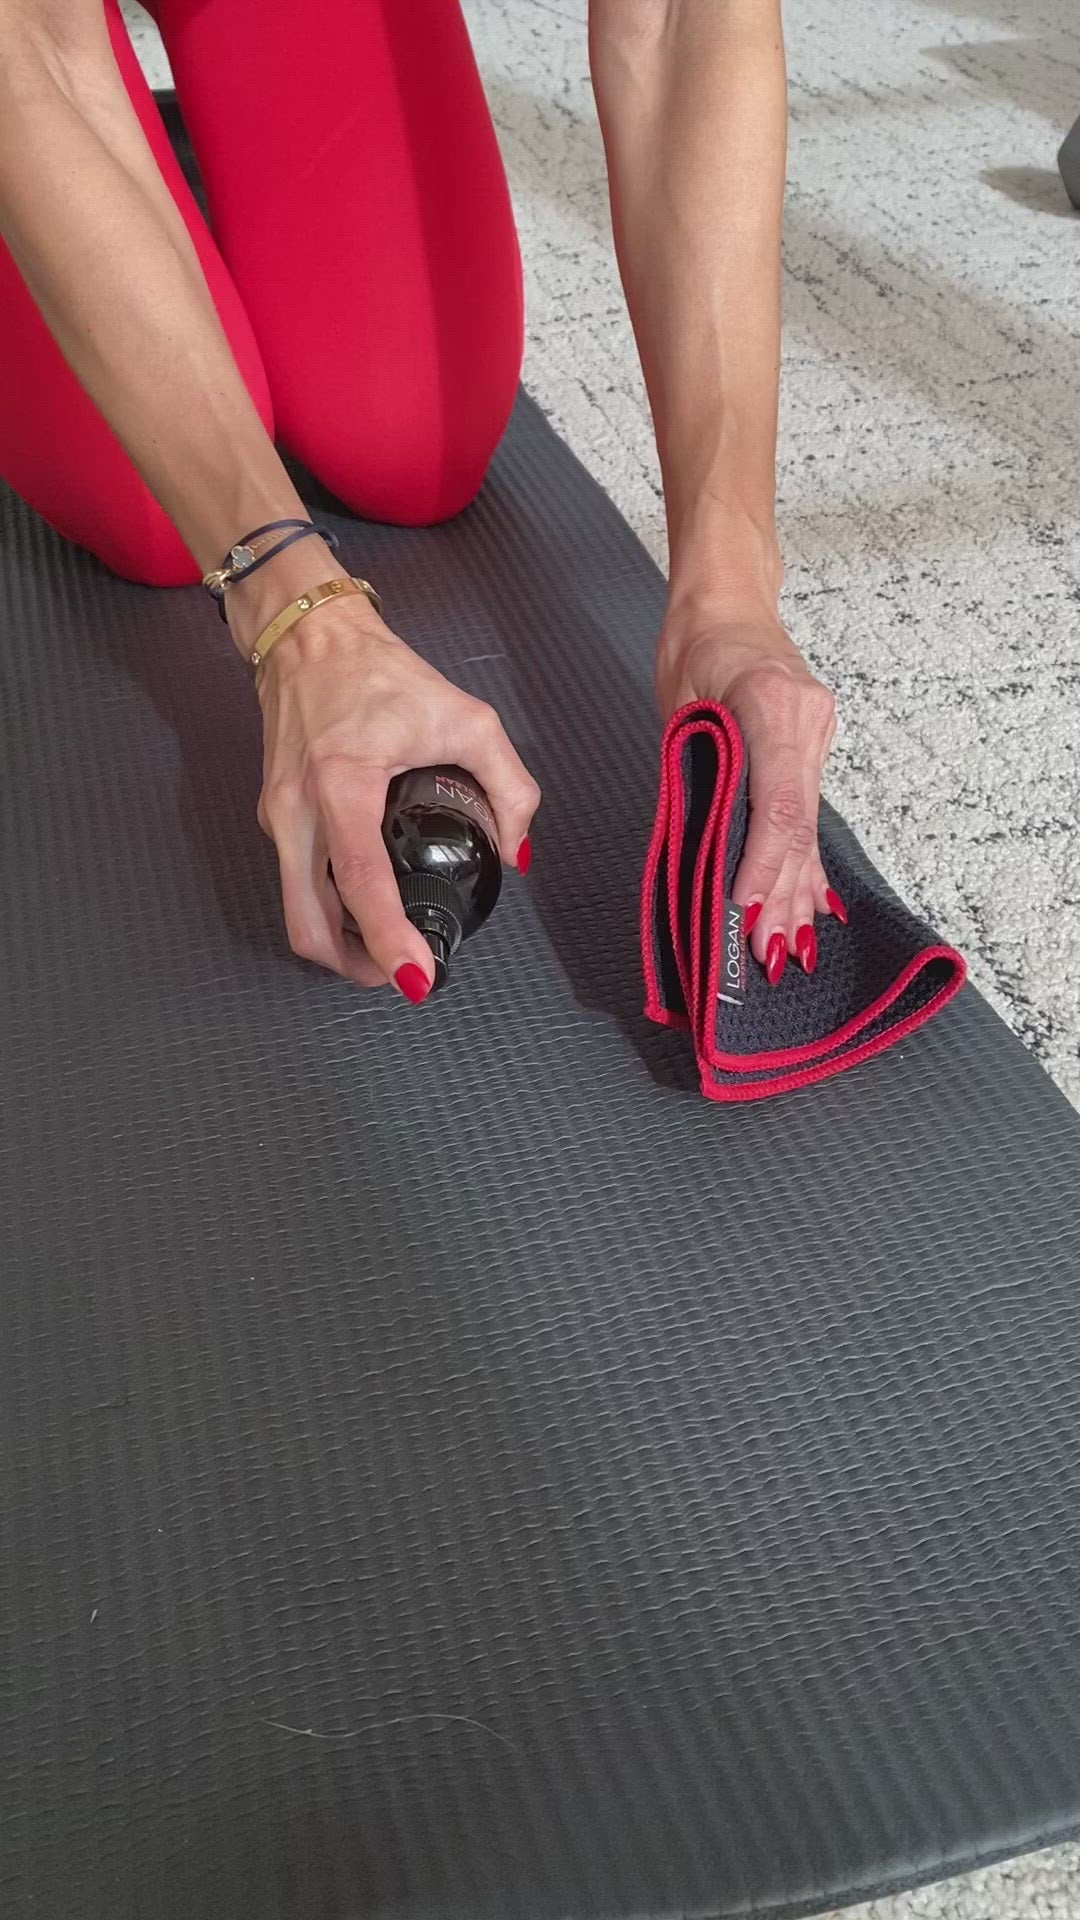 Yoga Mat & Equipment Surface Cleaner